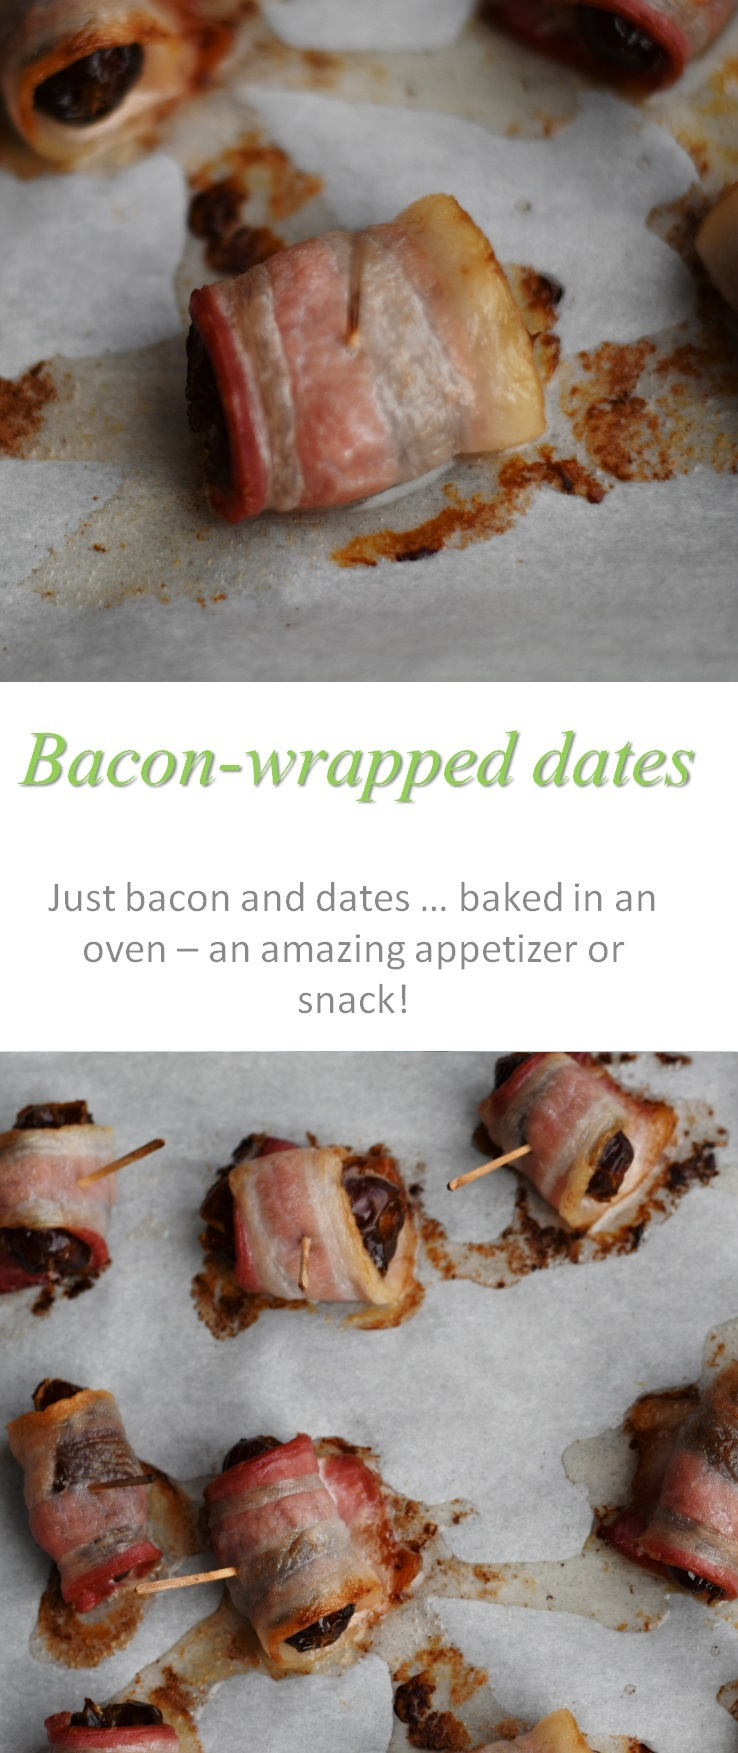 Bacon wrapped dates - the star of any party - and oh so easy to make! Just bacon, dates and an oven is all you'll need to make these awesome snacks! #bacon